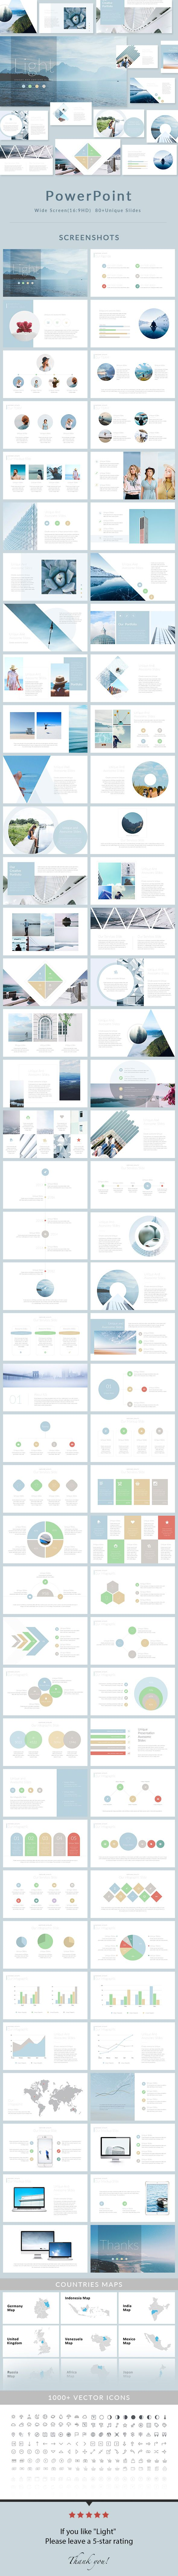 Light PowerPoint Presentation Template — Powerpoint PPT #1920x1080 #pptx template • Download ➝ https://graphicriver.net/item/light-powerpoint-presentation-template/19853338?ref=pxcr